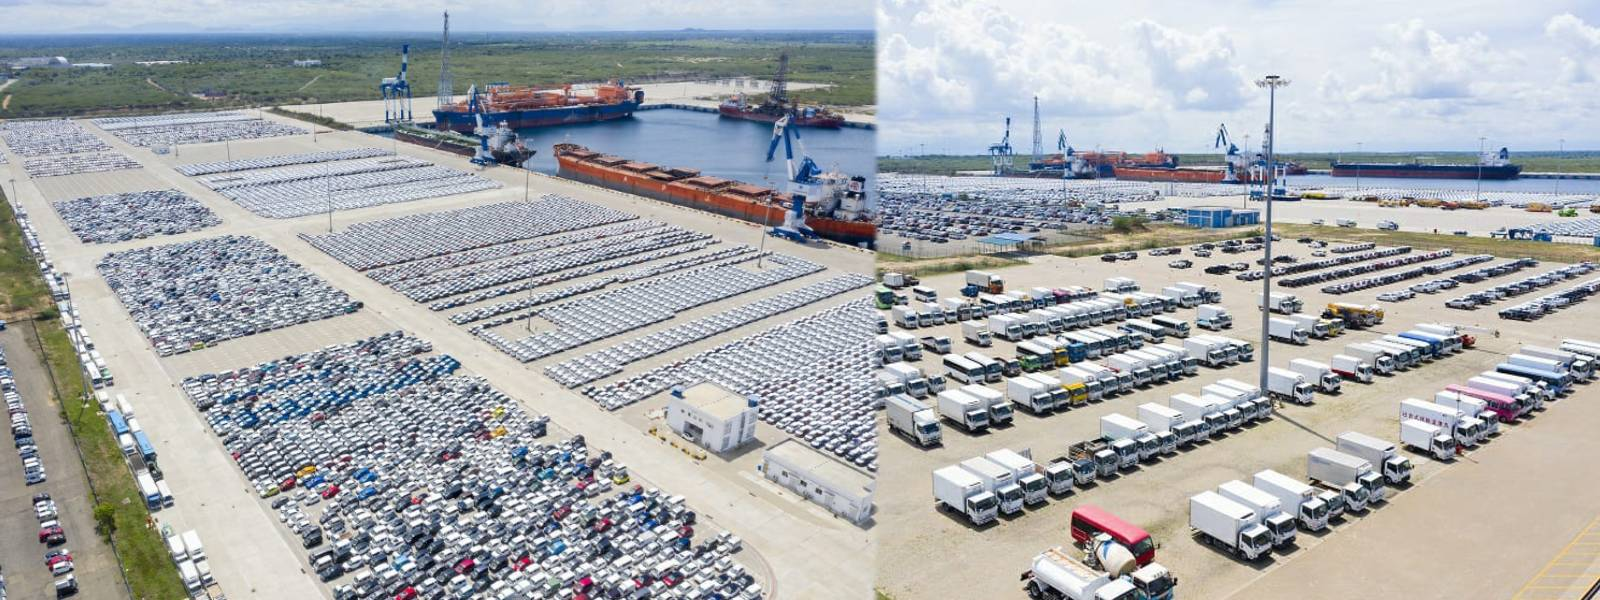 Hambantota Port asks importers to clear vehicles without delay